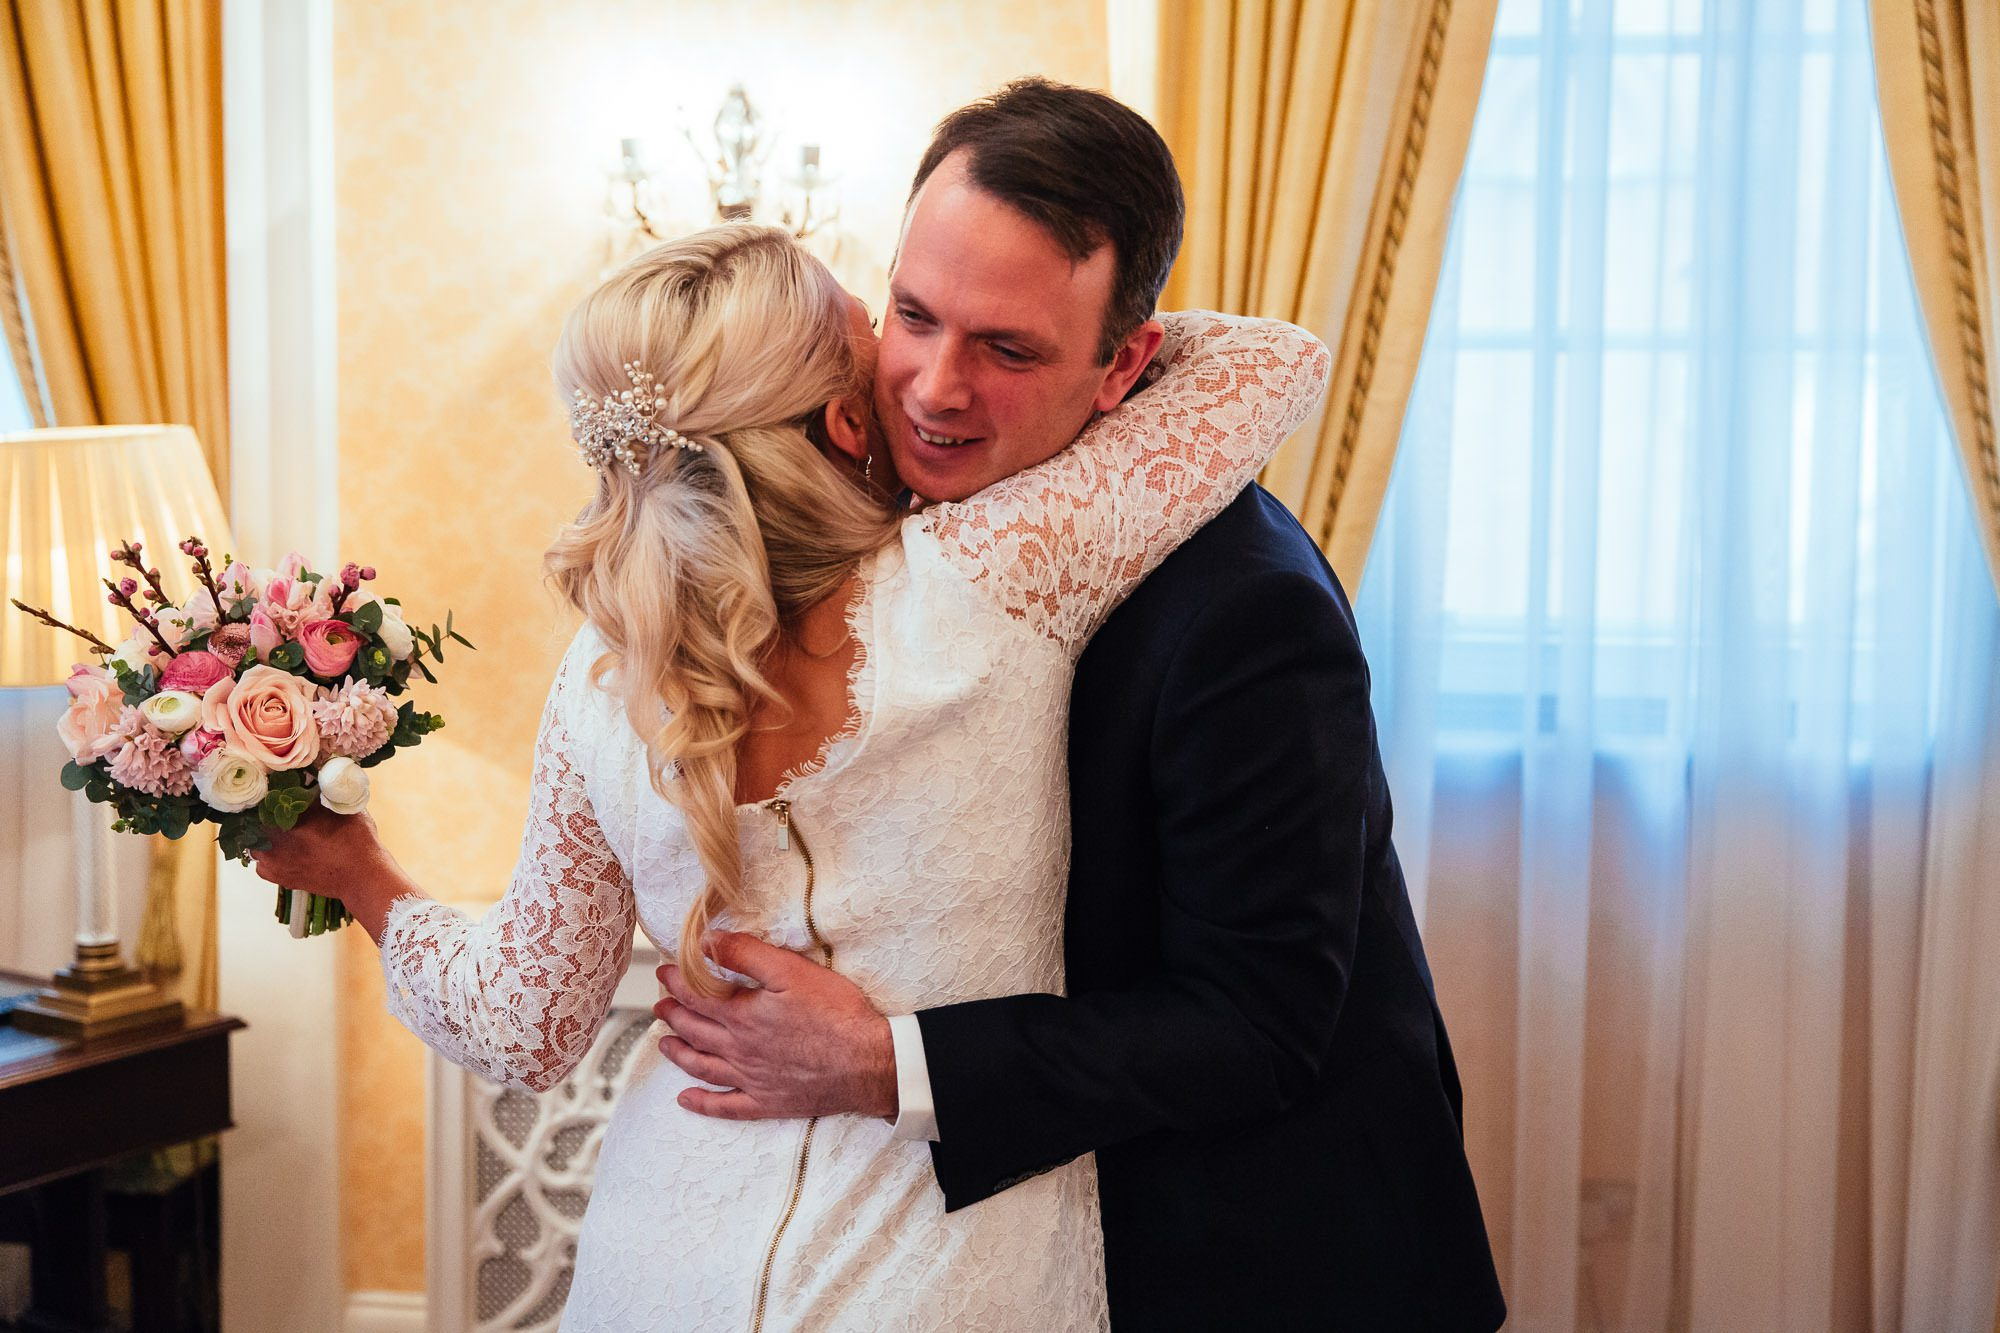 Jess & Simon - Kensington & Chelsea Wedding